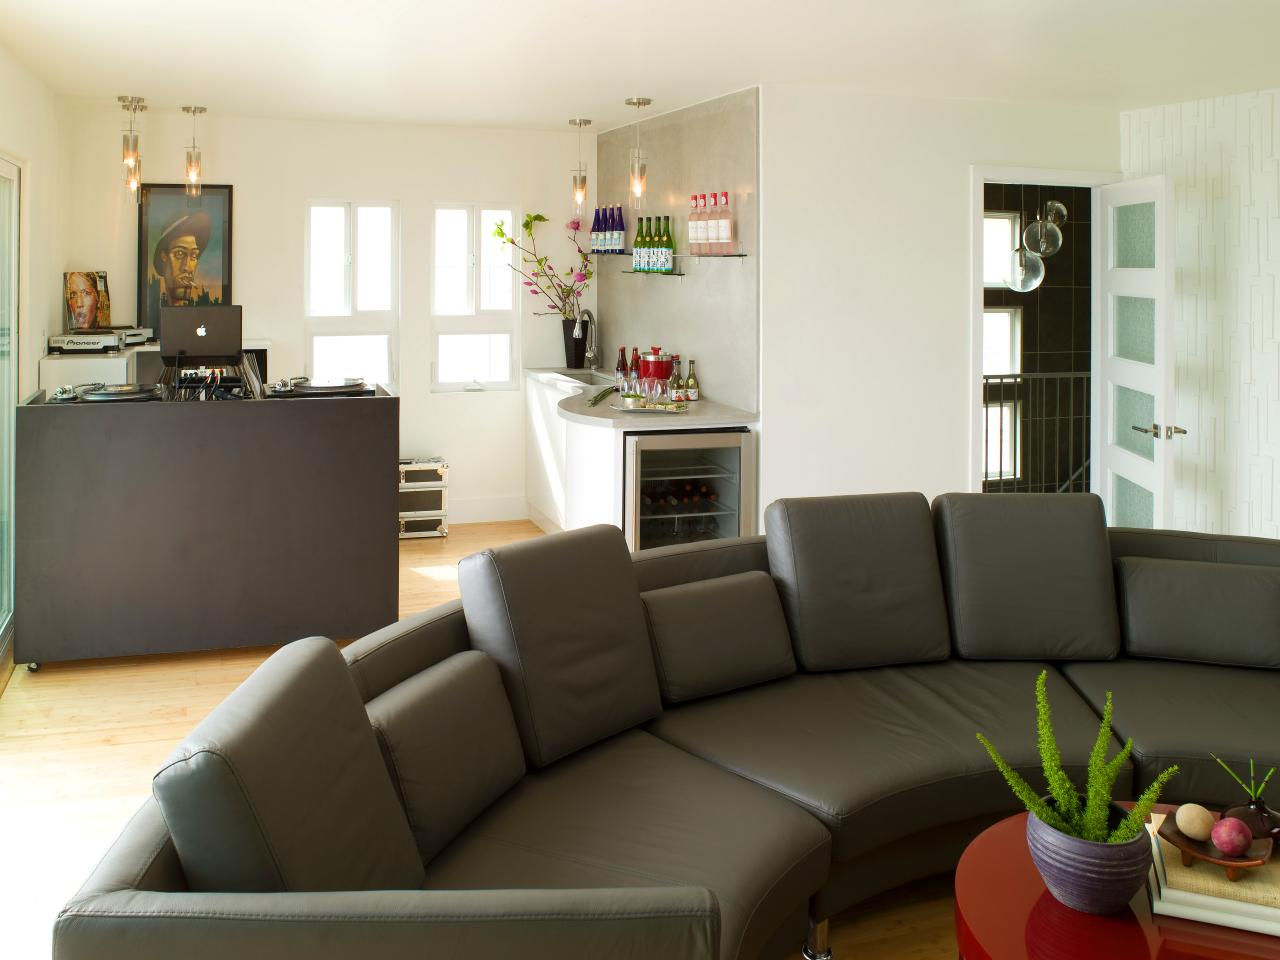 Big Sofa In A Small Room Stylish Oversized Sofas Living Room And Dining Room